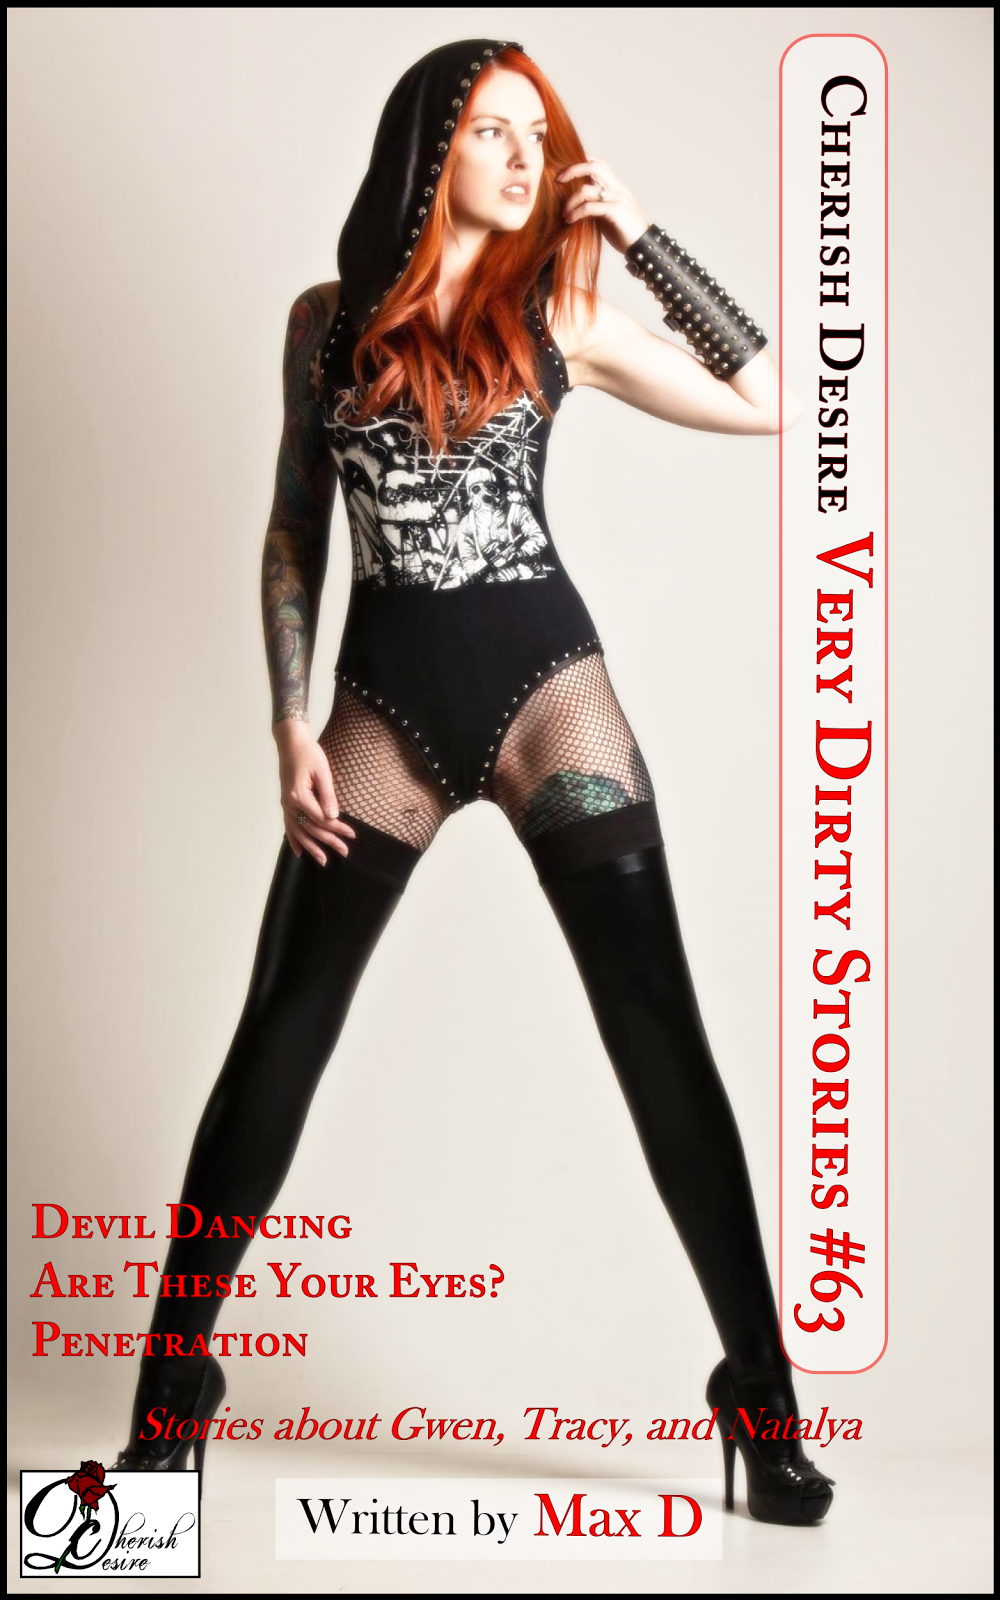 Cherish Desire: Very Dirty Stories #63, Max D, erotica